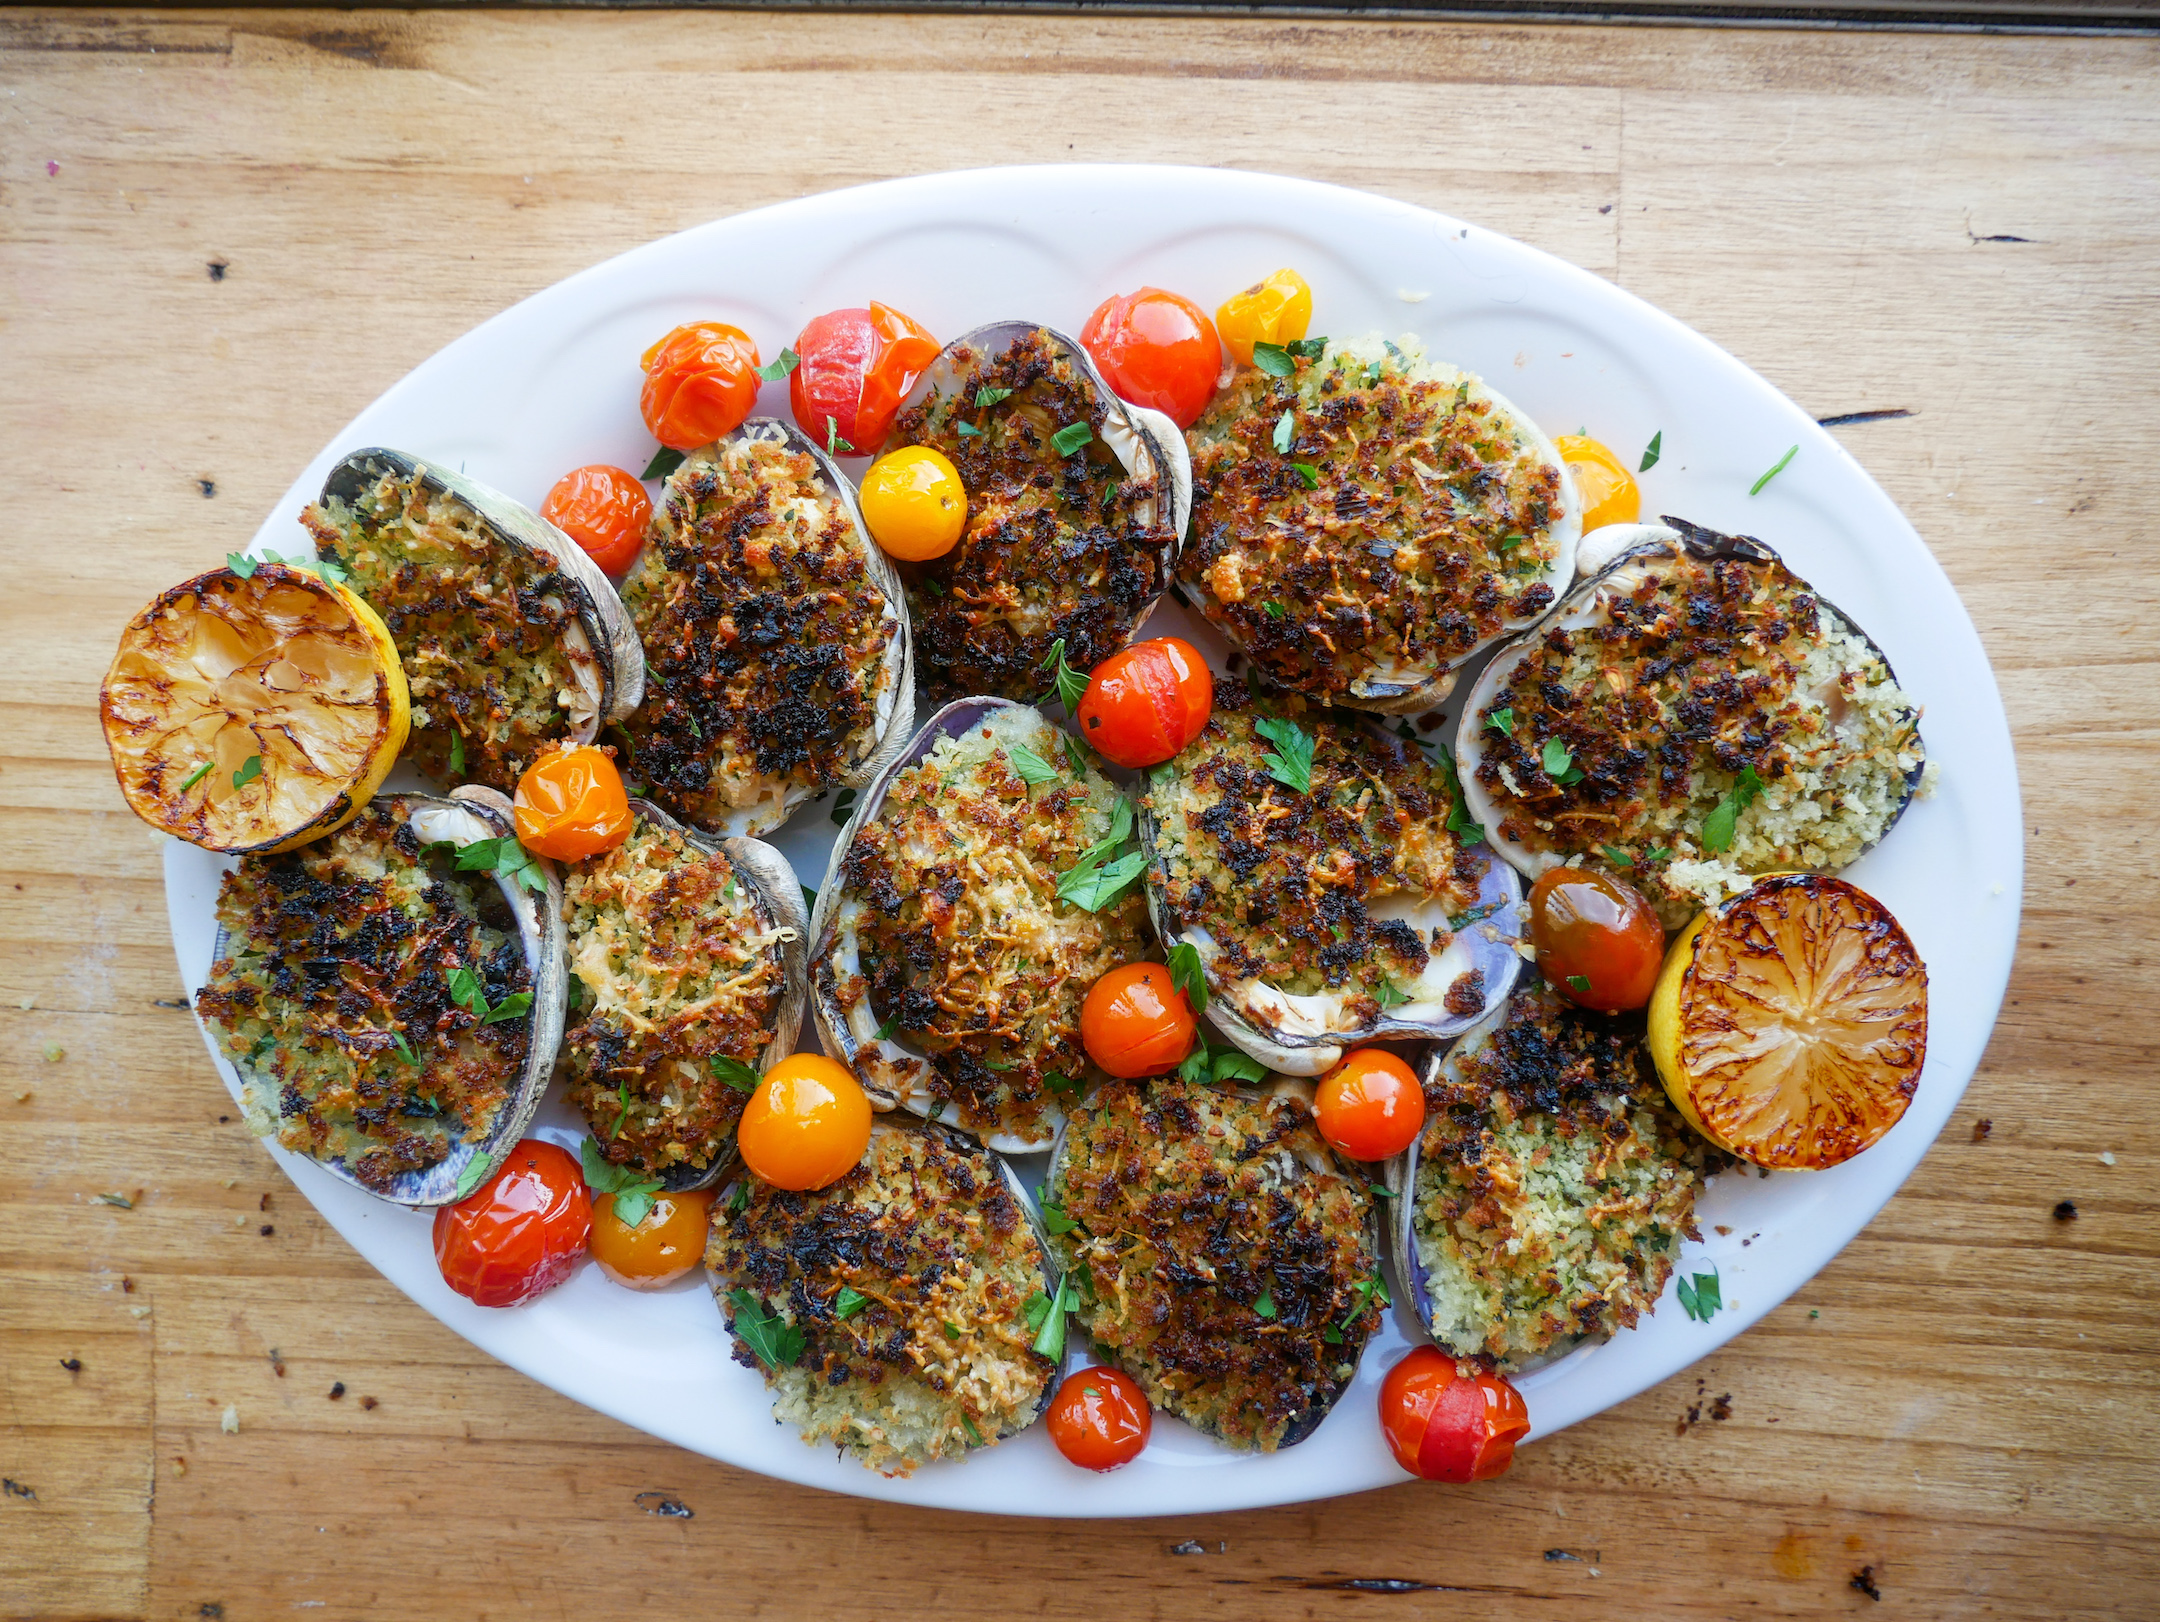 Baked Clams with White Wine Tarragon Butter